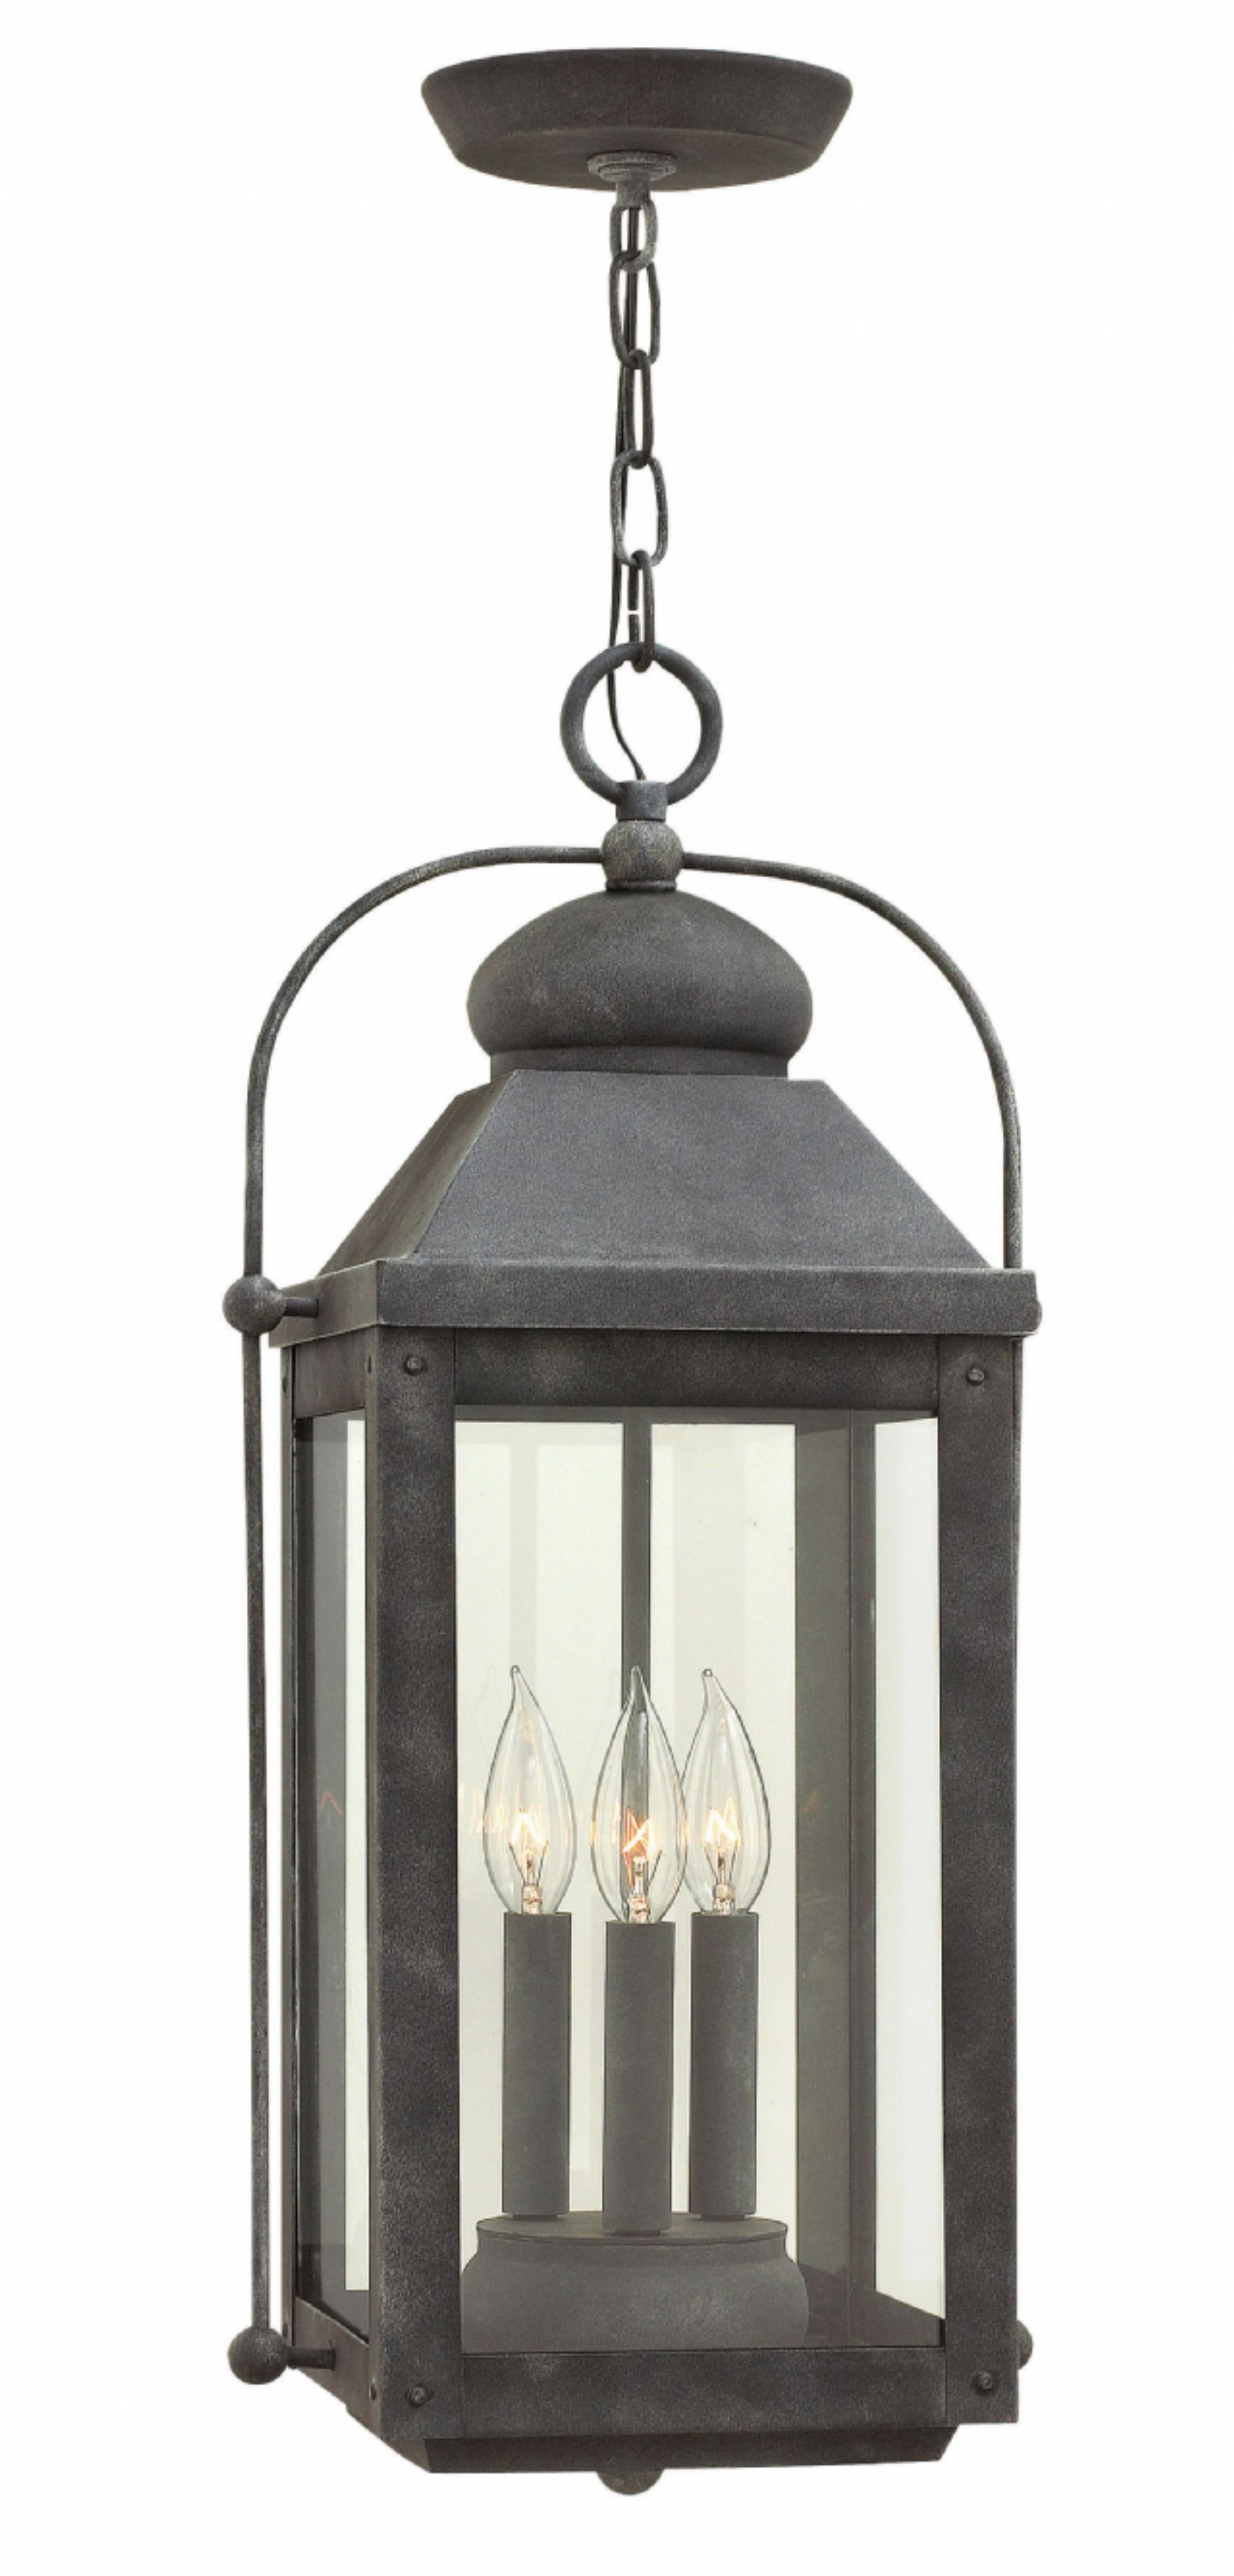 Aged Zinc Anchorage > Exterior Ceiling Mount Throughout Popular Hinkley Outdoor Hanging Lights (Gallery 8 of 20)